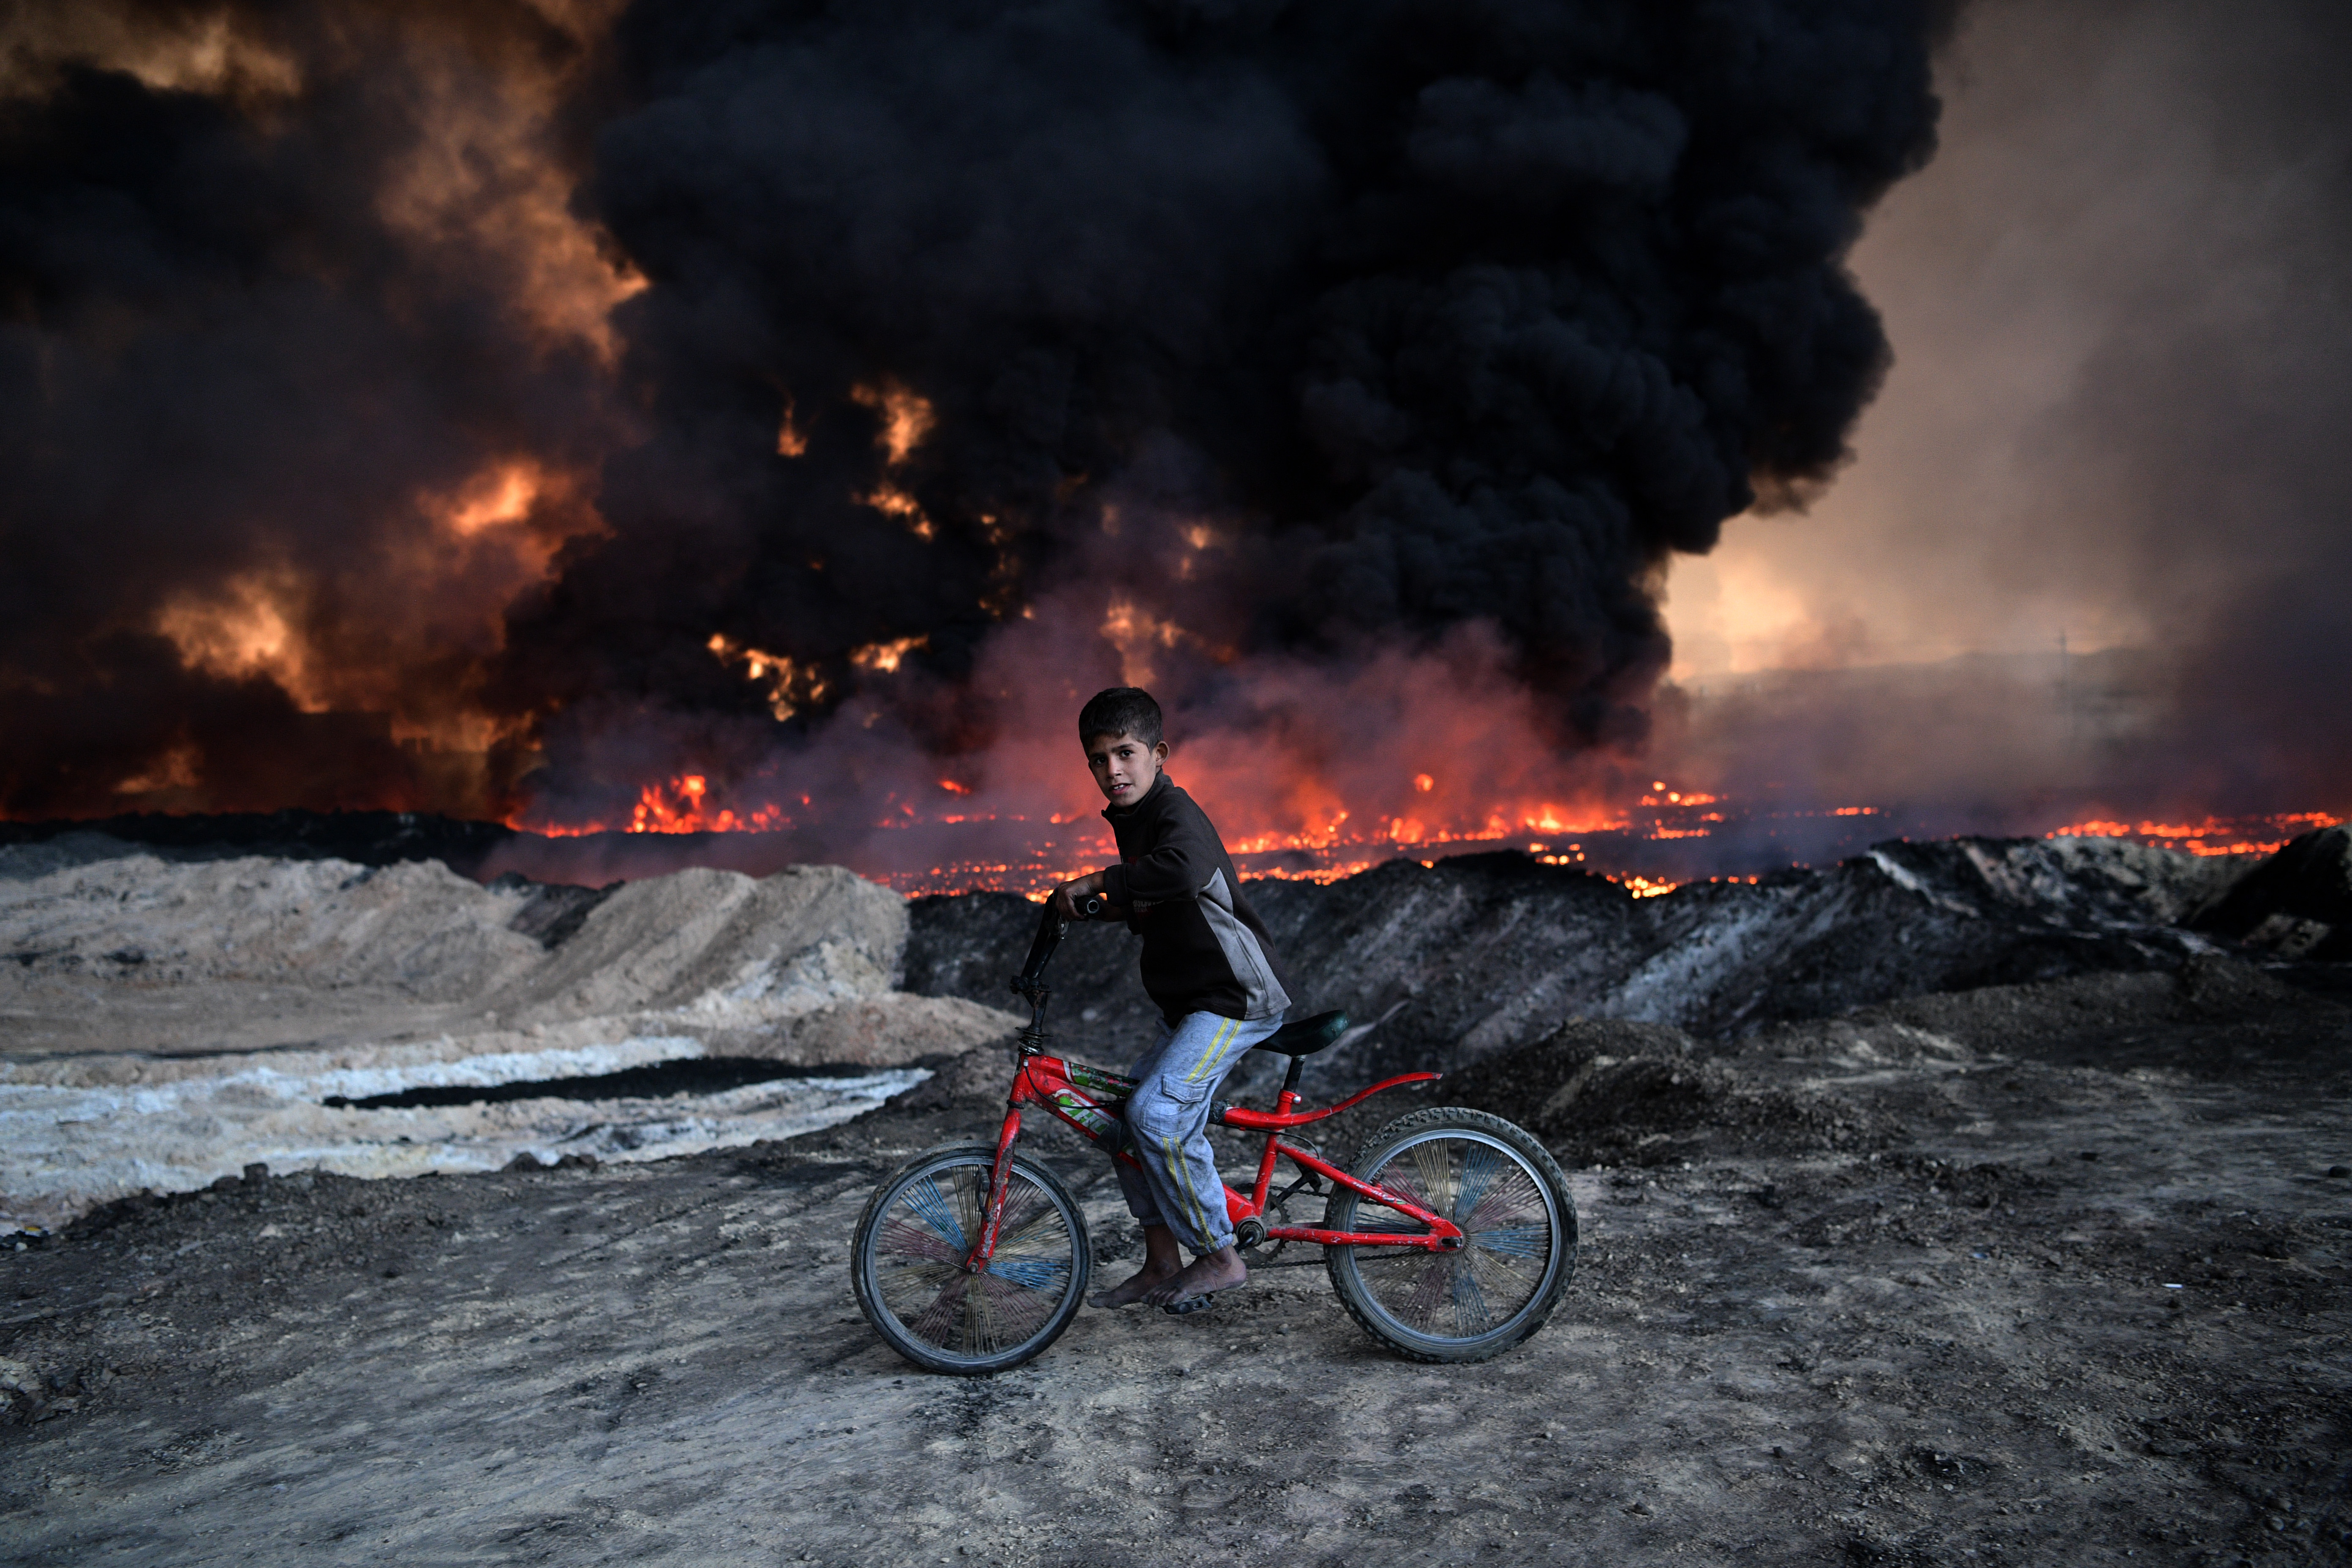 An Iraqi boy passes an oil field that was set on fire by retreating ISIS extremists ahead of the Mosul offensive in Qayyarah, Iraq, on Oct. 21. (Carl Court/Getty Images)